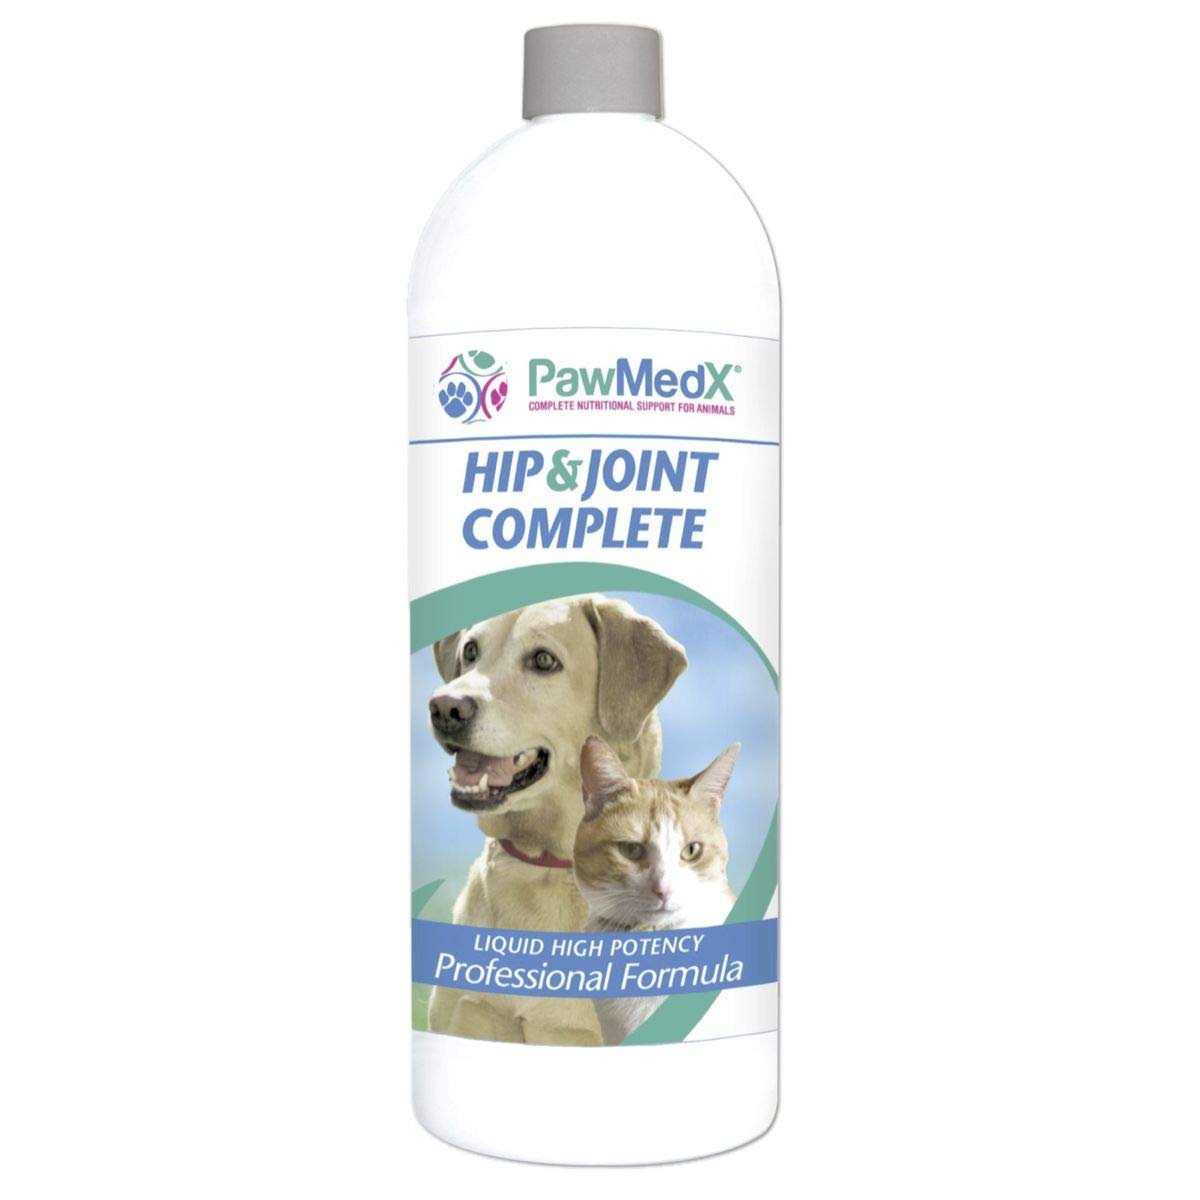 Liquid Glucosamine for Dogs | Glucosamine, Chondroitin, MSM, Collagen, L-Proline, VitC,Calcium, Boron, Grapeseed Extract. Extra Strength| Made in USA - 32oz - by Eniva Health